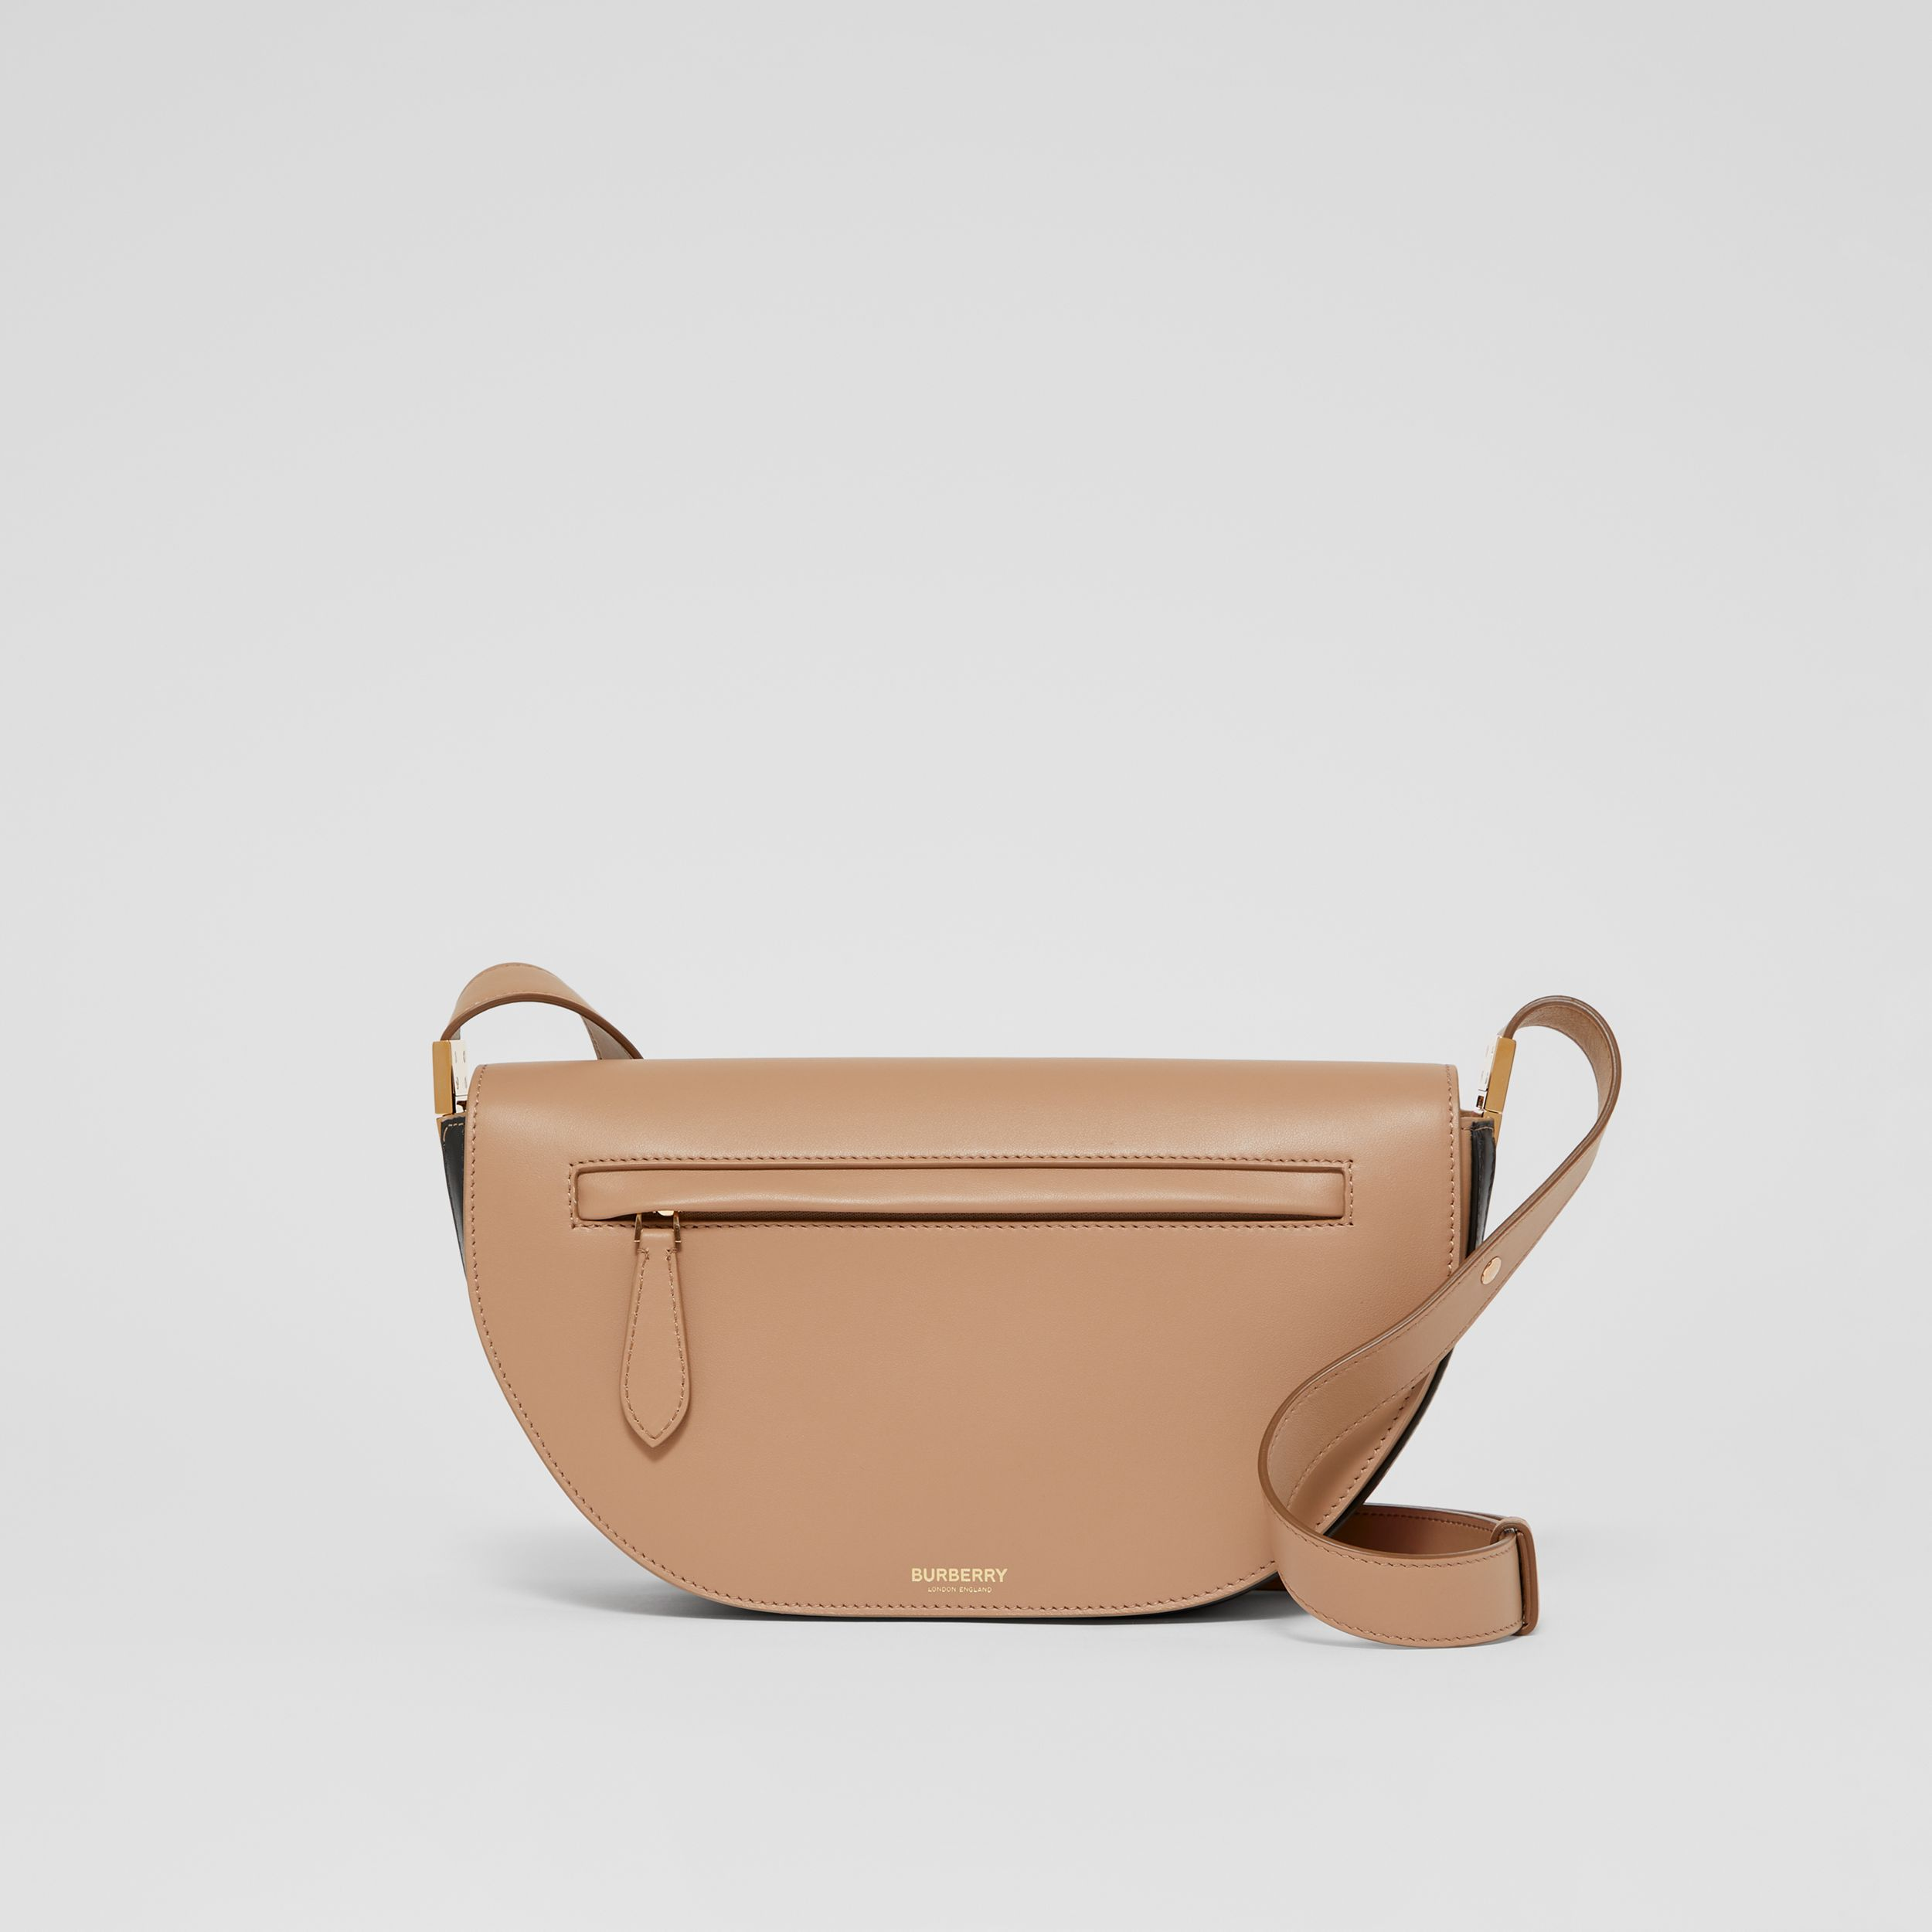 Small Leather Olympia Bag in Camel - Women | Burberry - 1